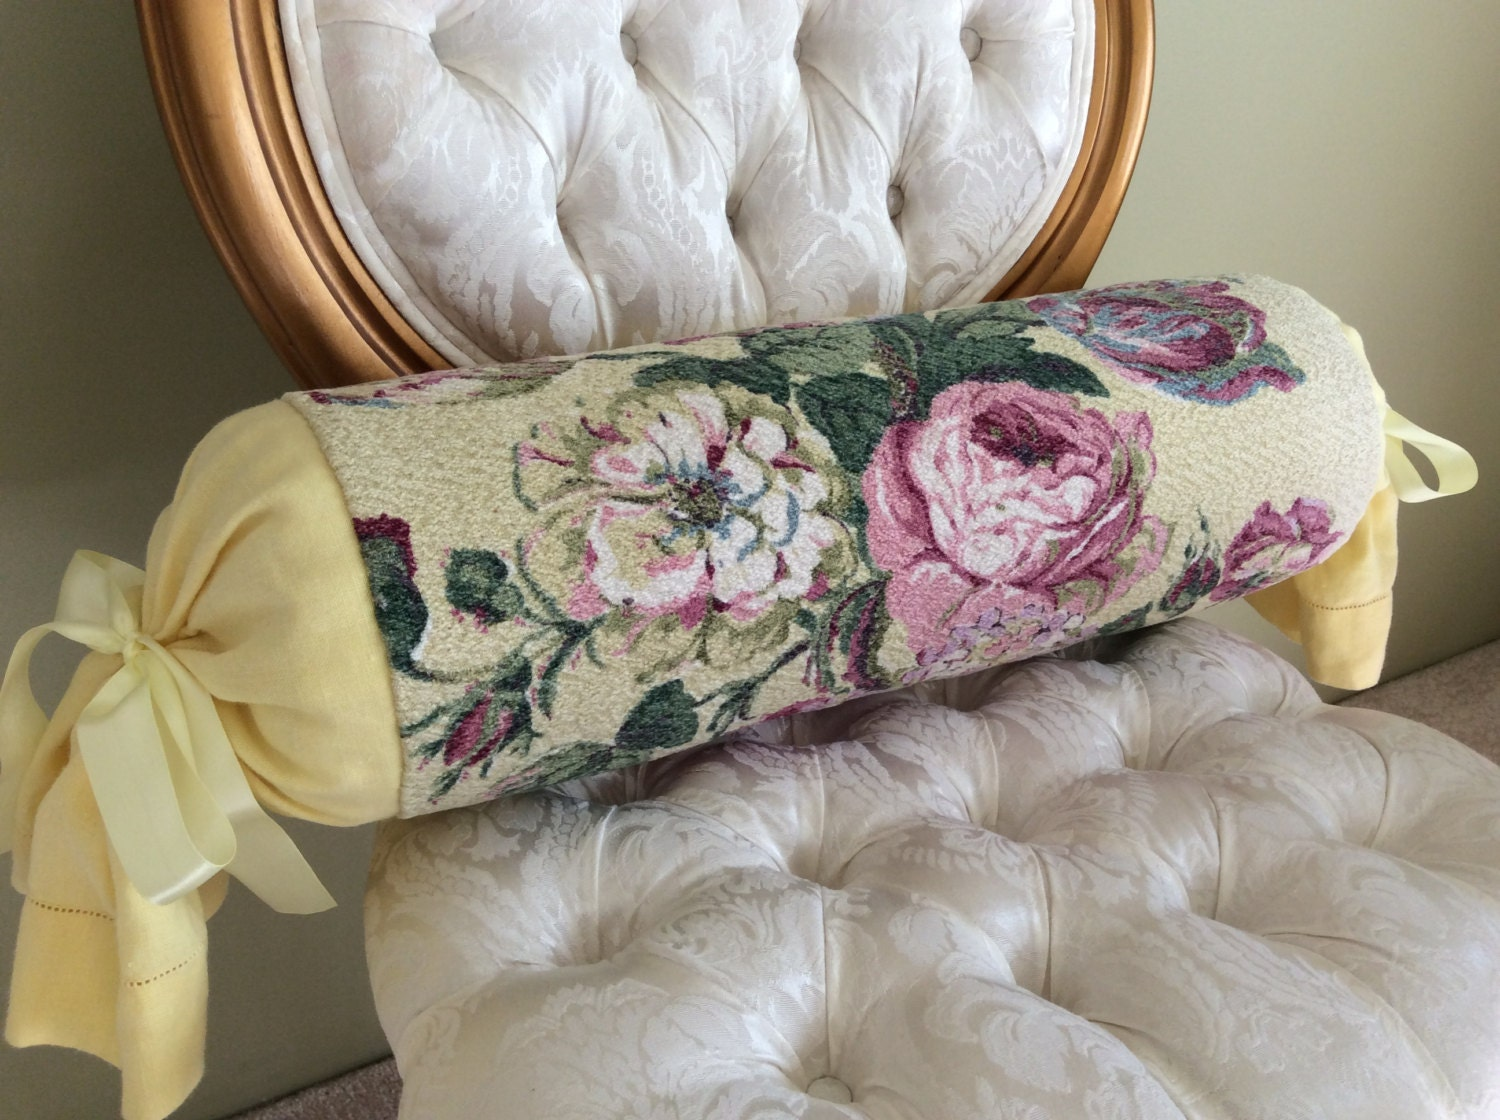 Yellow And Pink Long Bolster Pillow Bark Cloth Irish Linen Floral Decorative Pillow Home Decor Pillows